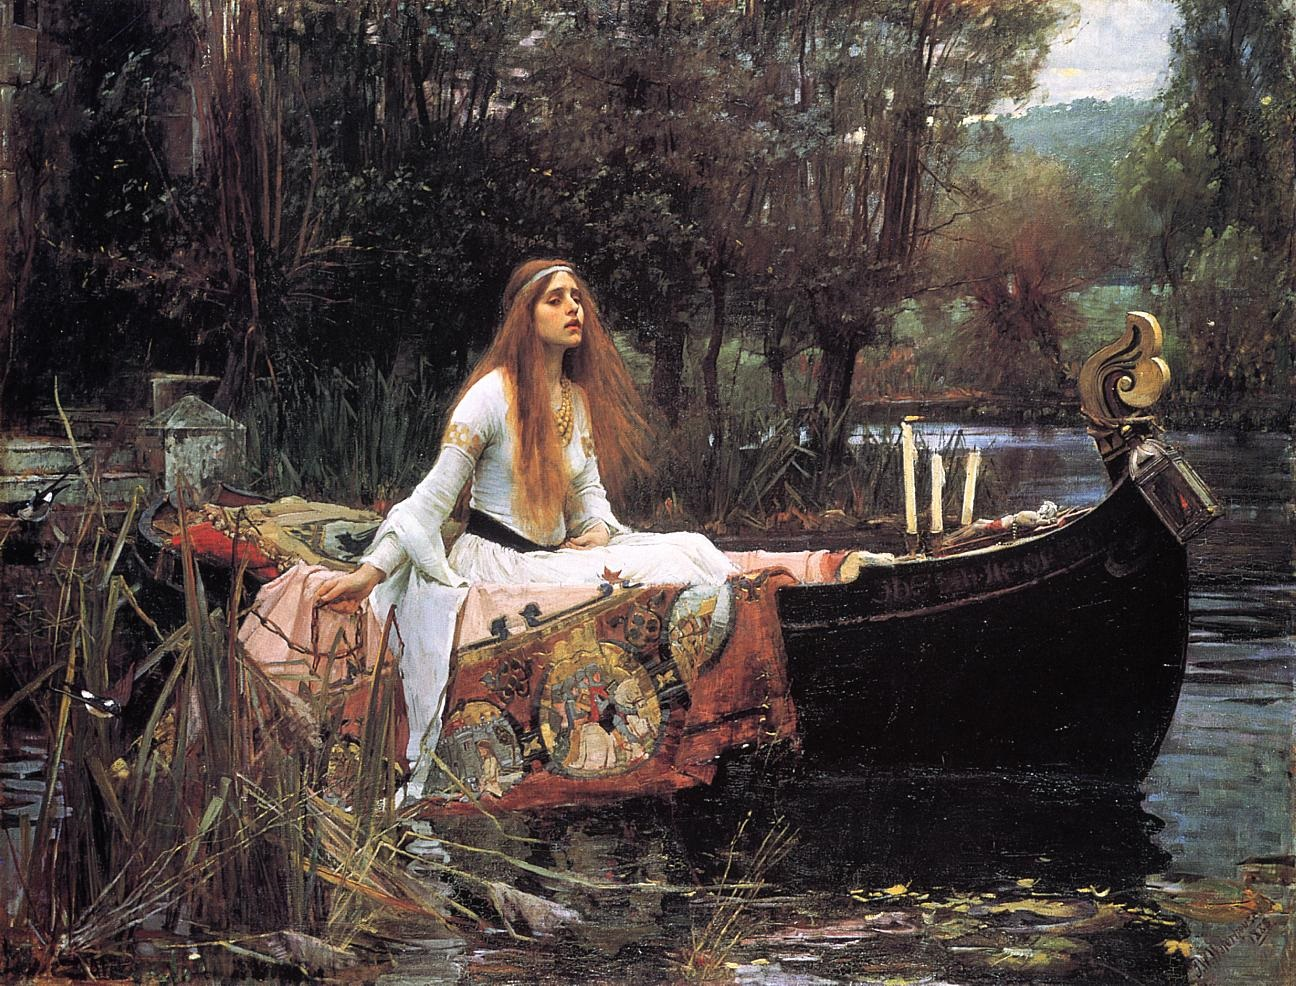 John William Waterhouse The Lady of Shal